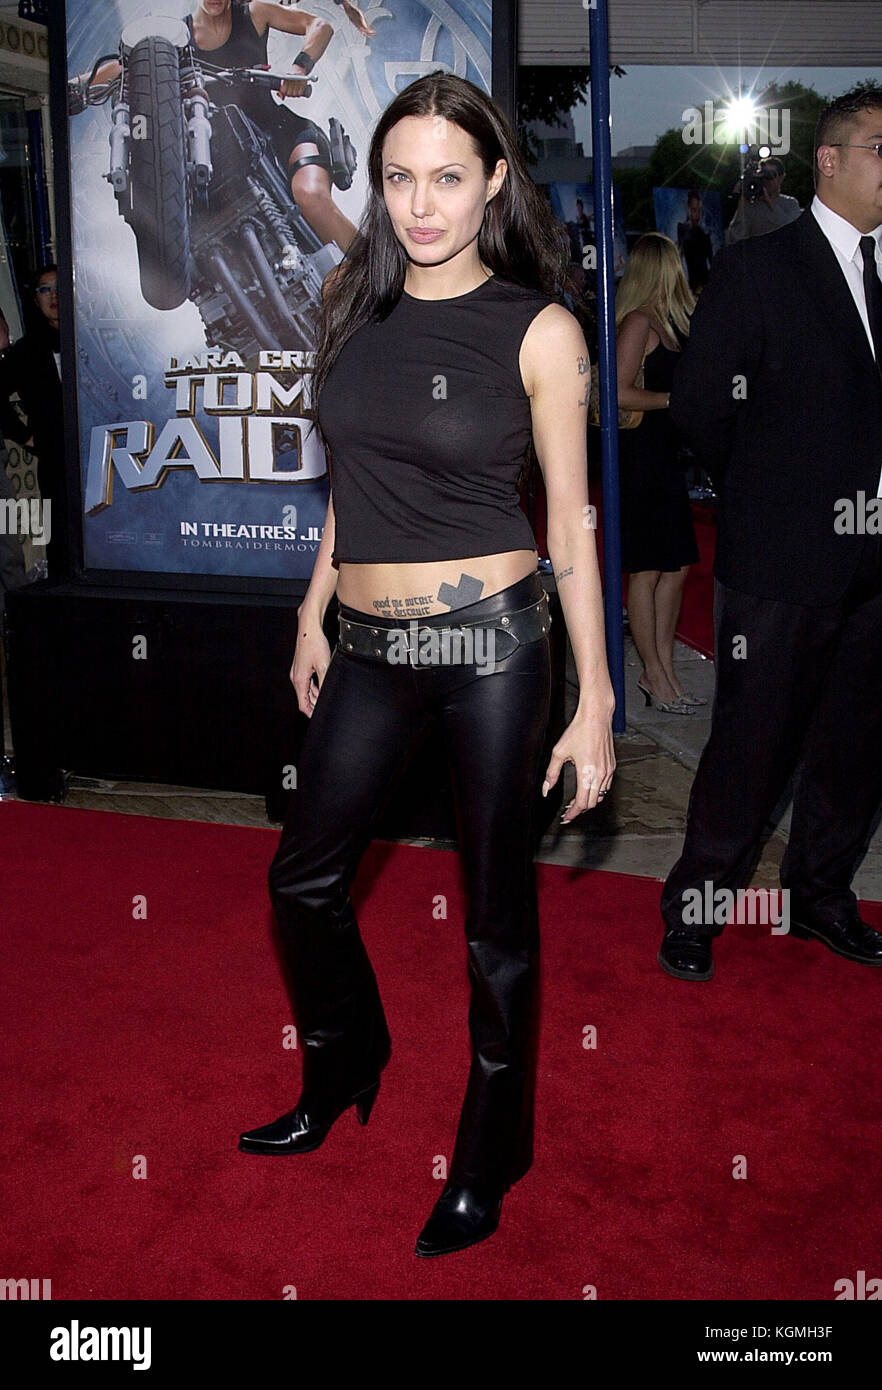 Angelina Jolie Arriving At The Lara Croft Tomb Raider